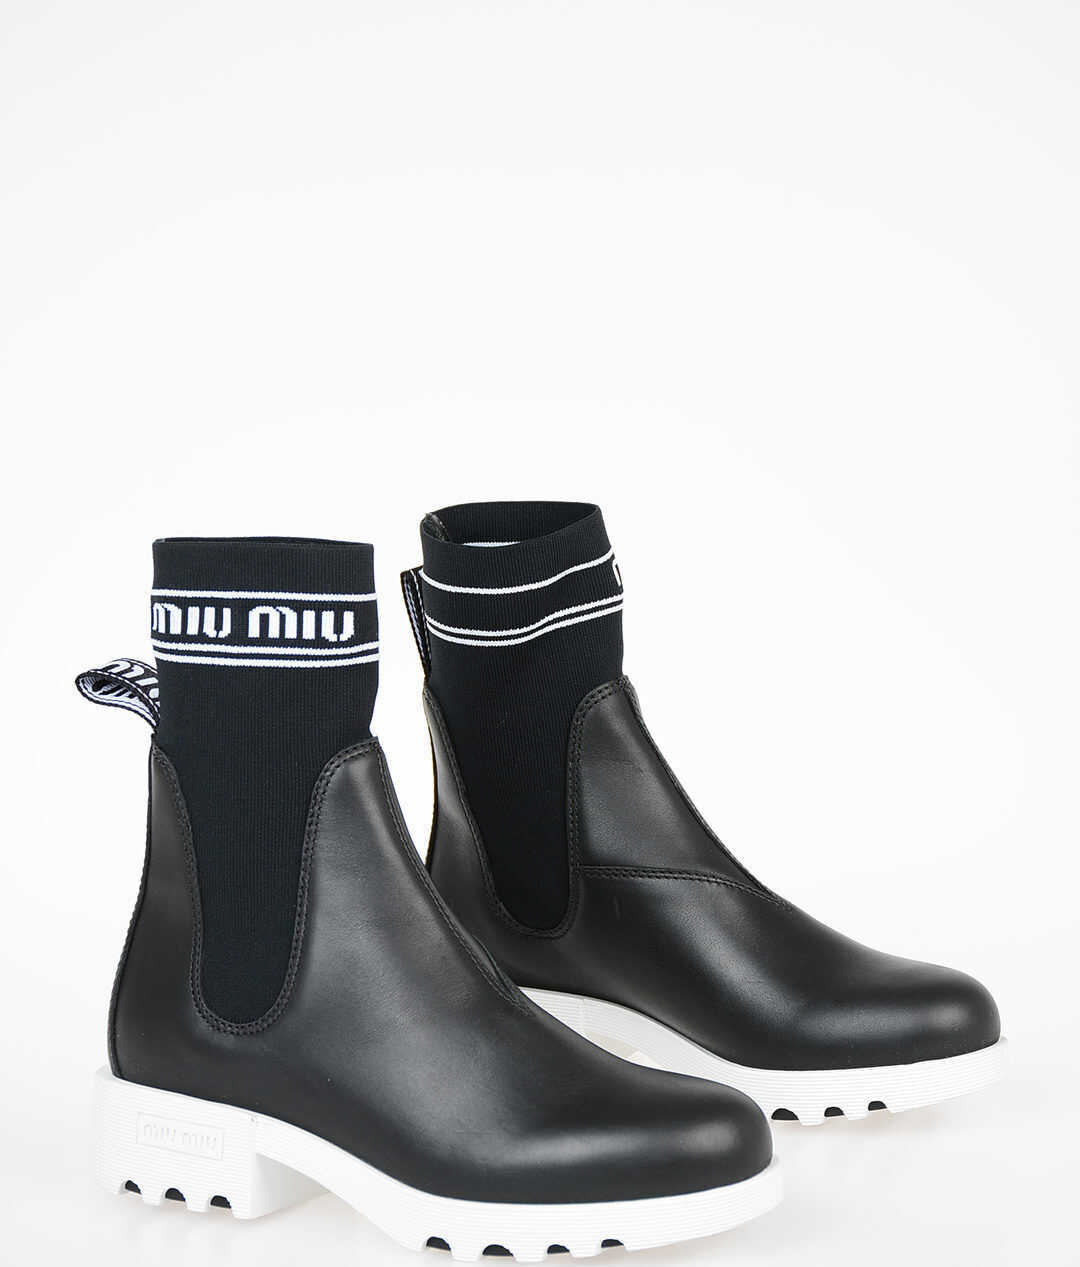 Miu Miu Fabric and Leather Pull On Boots BLACK